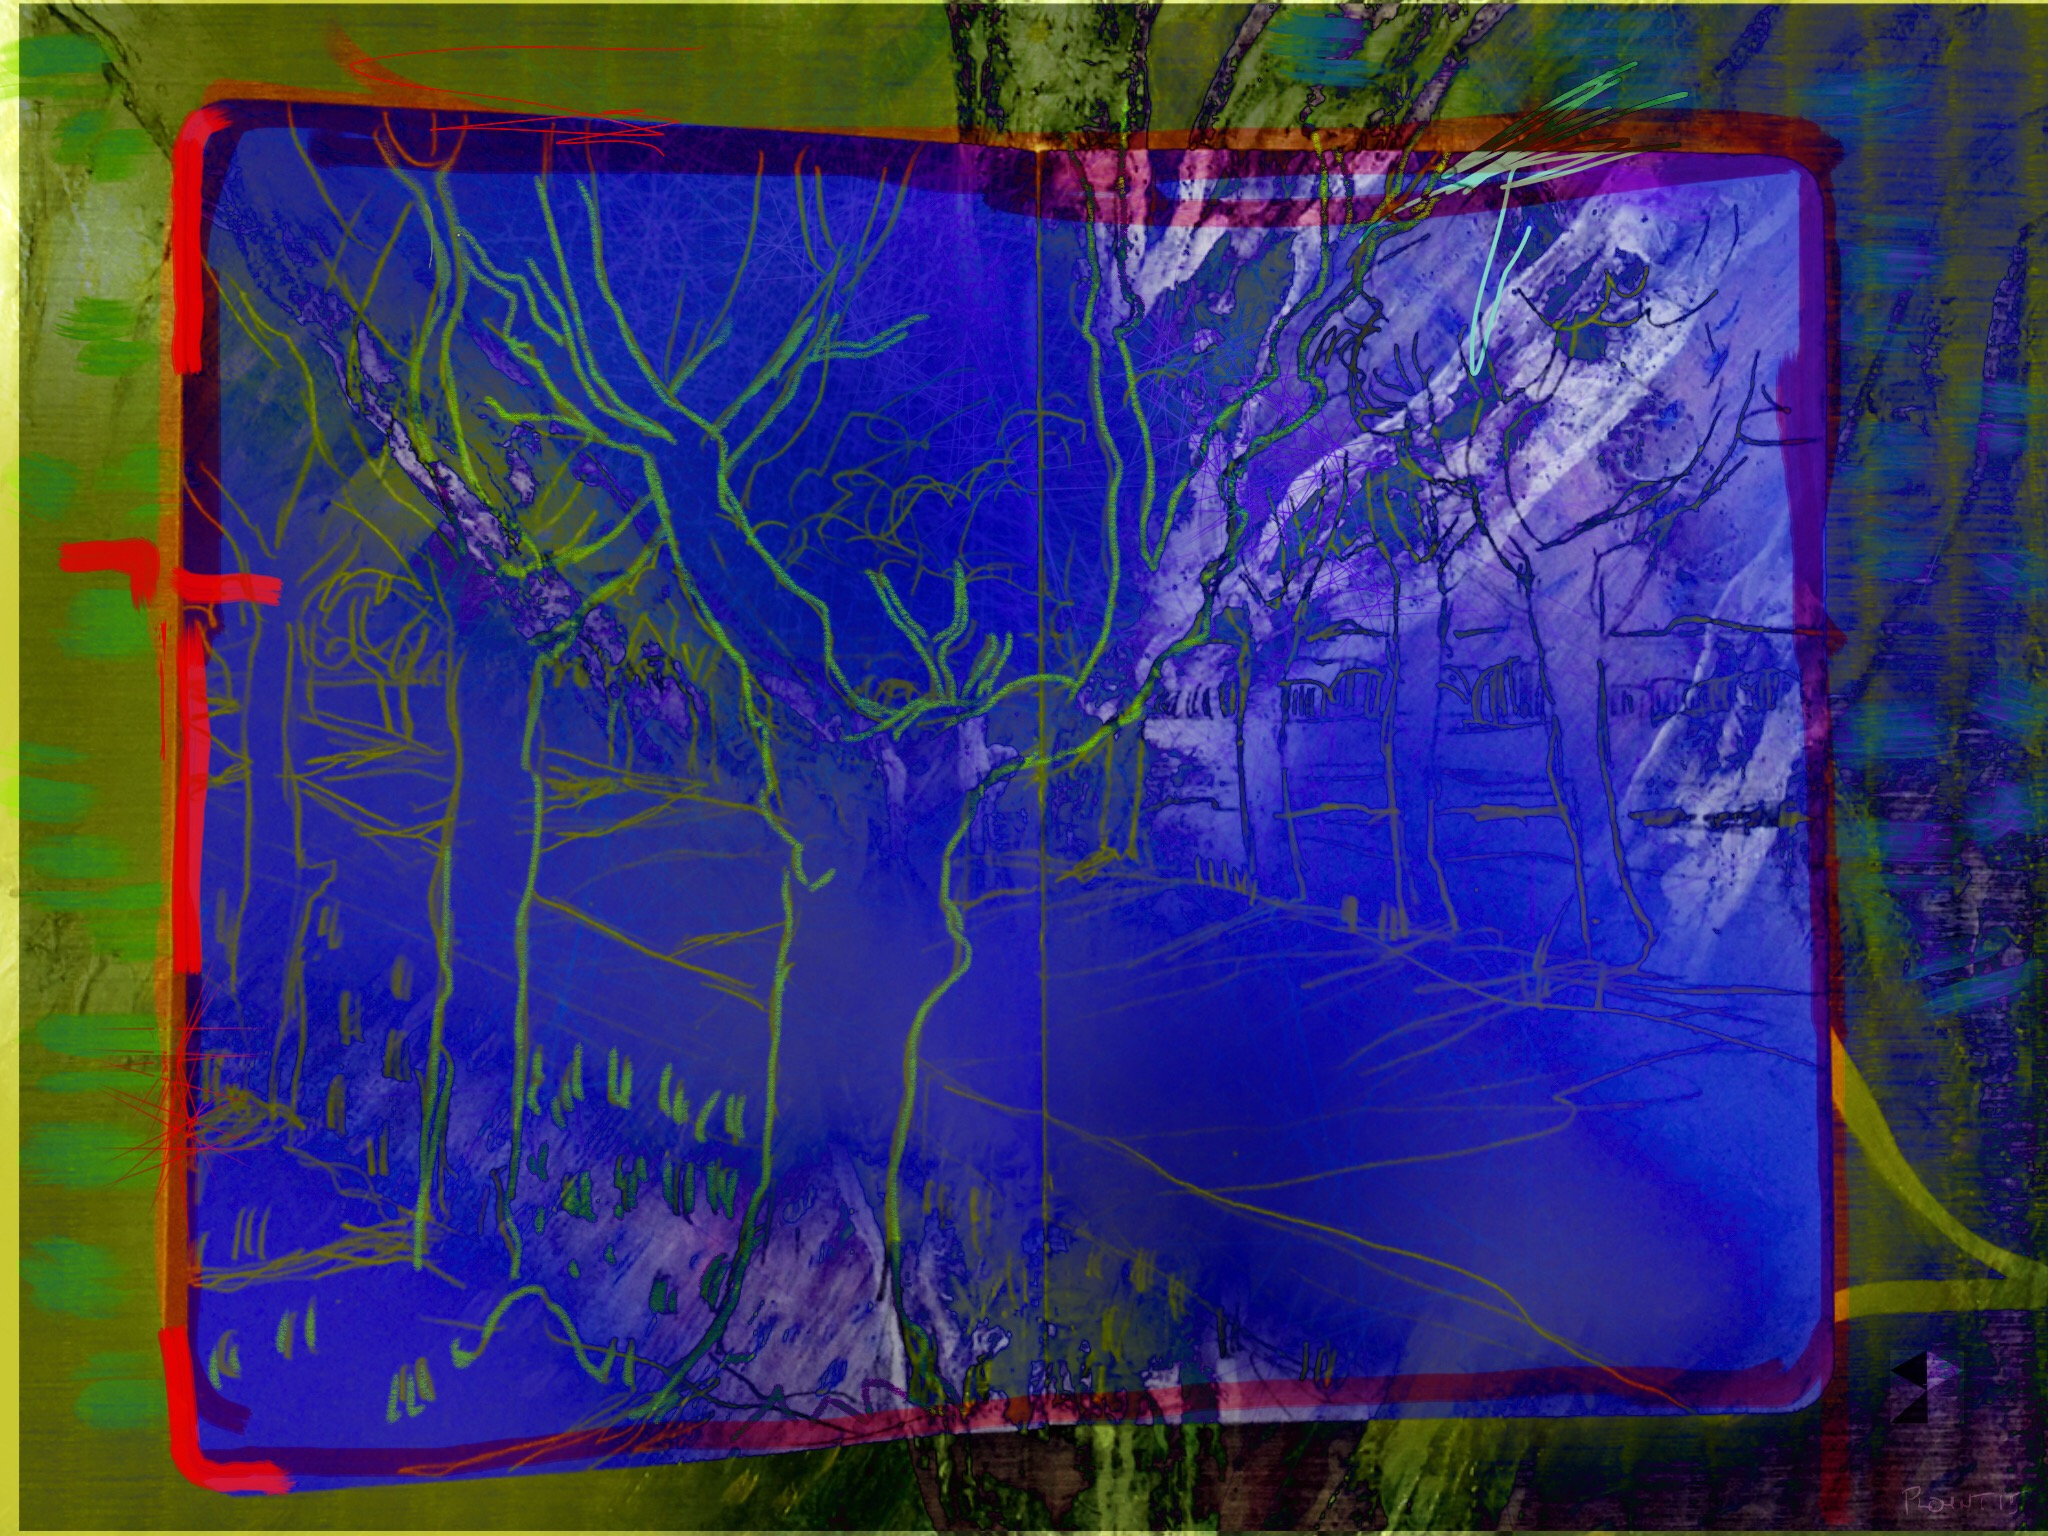 """Vincent's Road   Electronics Painting, Sketchbook Scan, iPad, Procreate, Pencil 53, Photoshop. © 2016 dimensions variable to 48"""" x 60"""" giclee limited edition prints available contact the artist"""